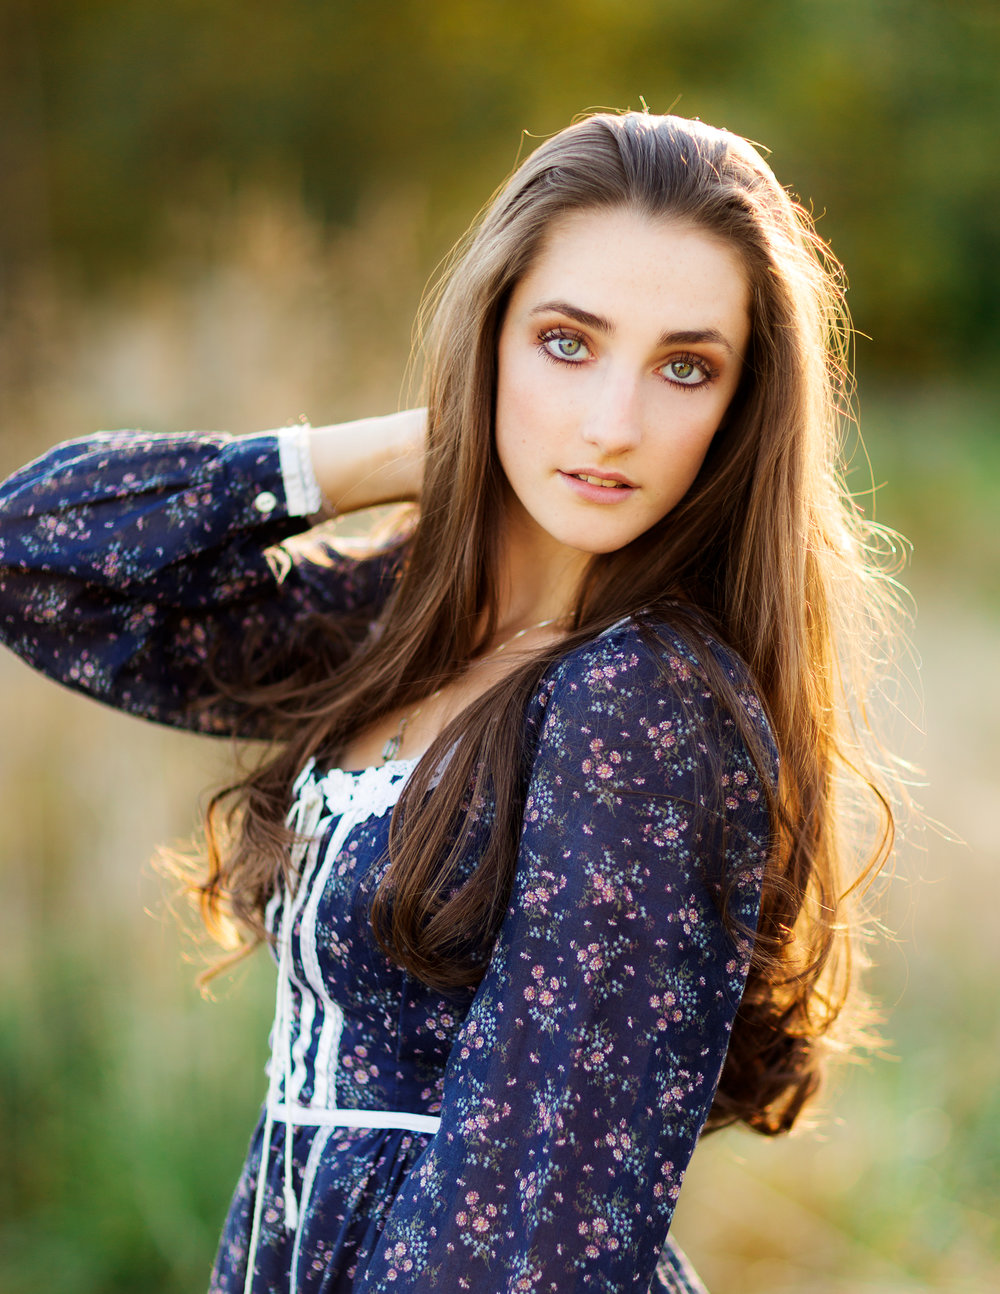 ariellanoellephotography-portraiture-highschool-seniors-top-seattle-area-photographer-1-52.jpg